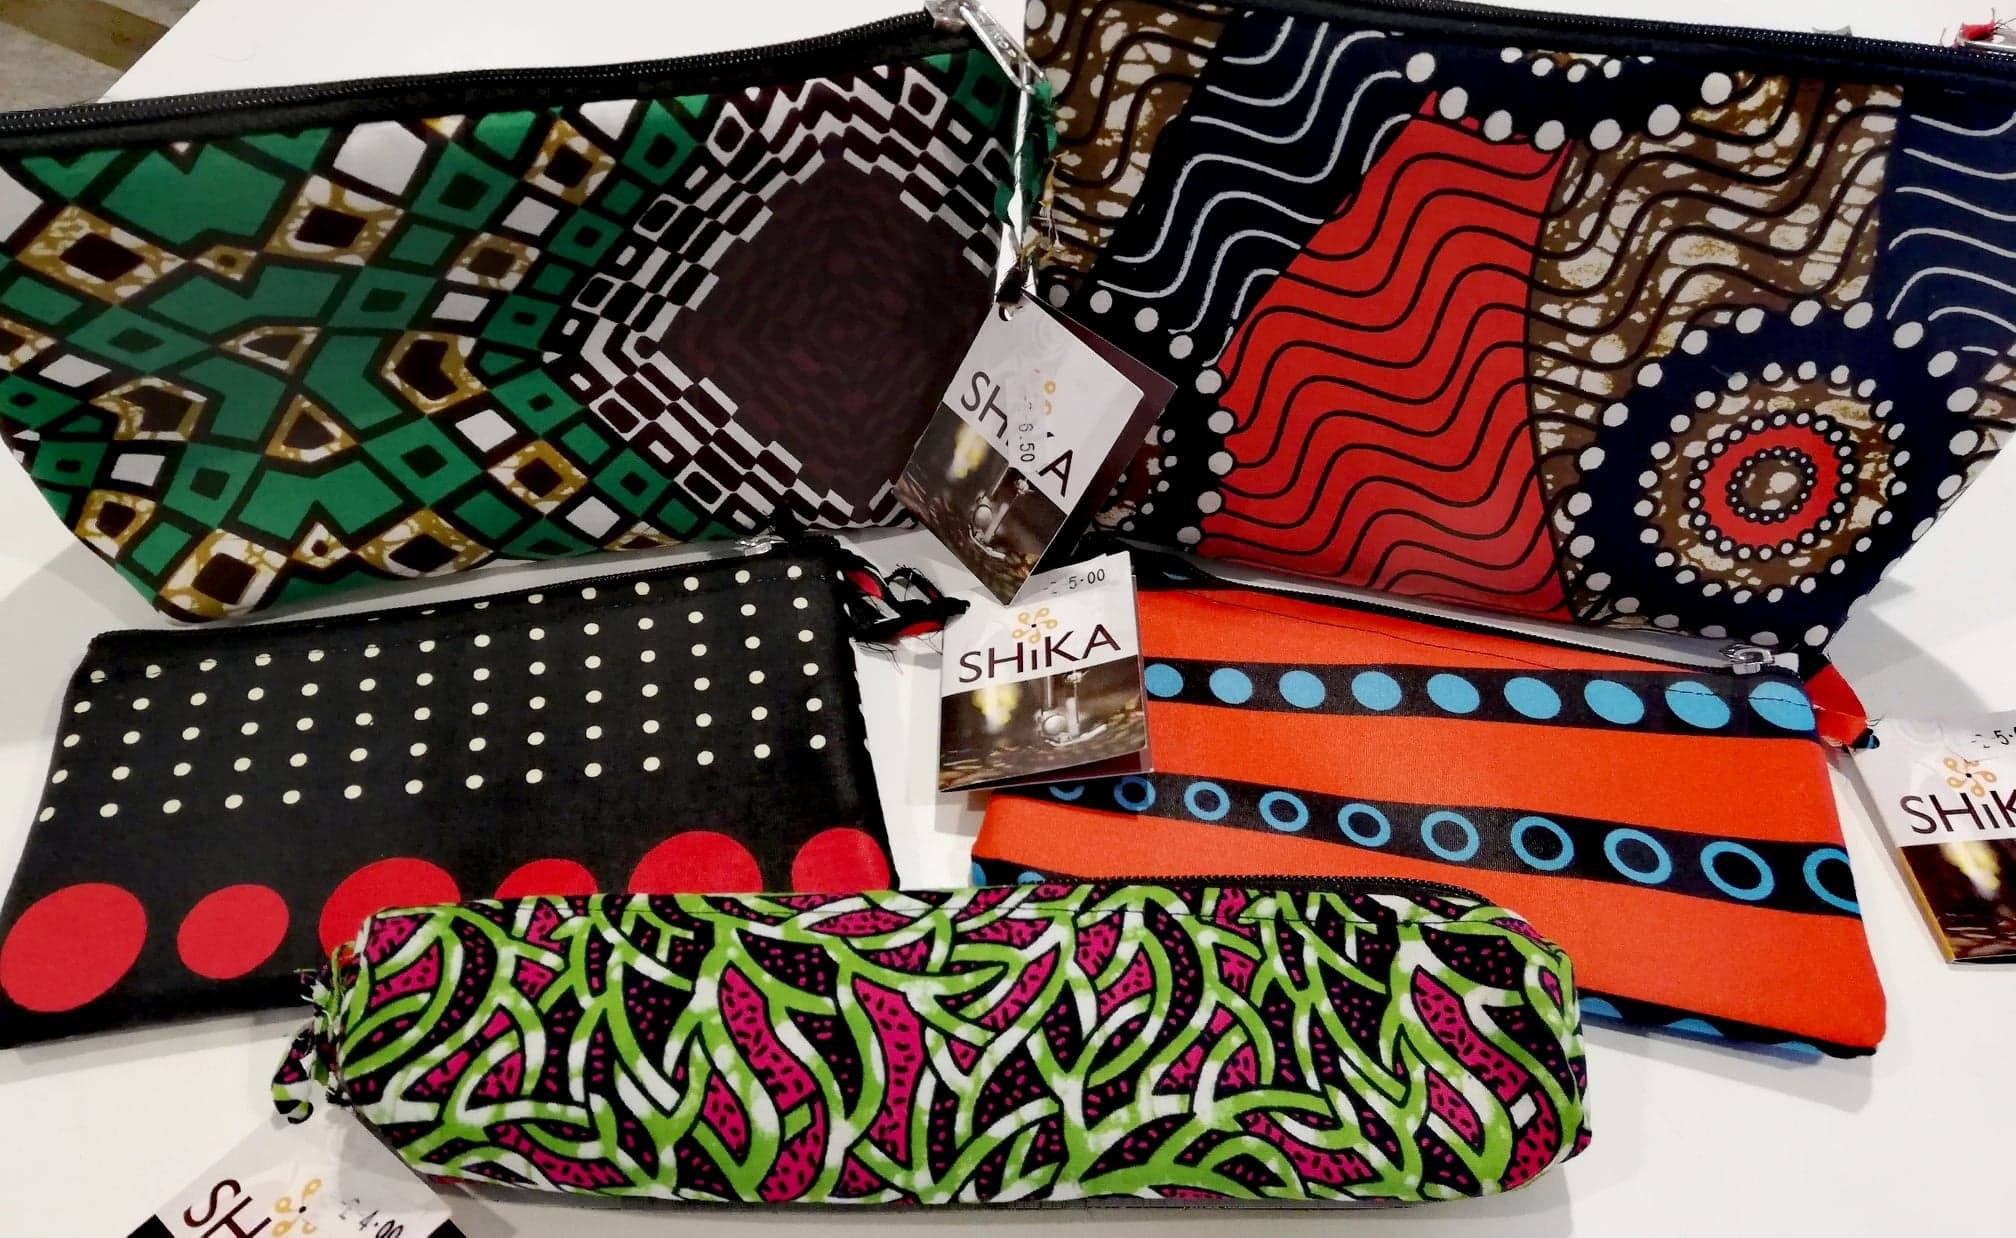 Shika pencil cases in different patterns and sizes